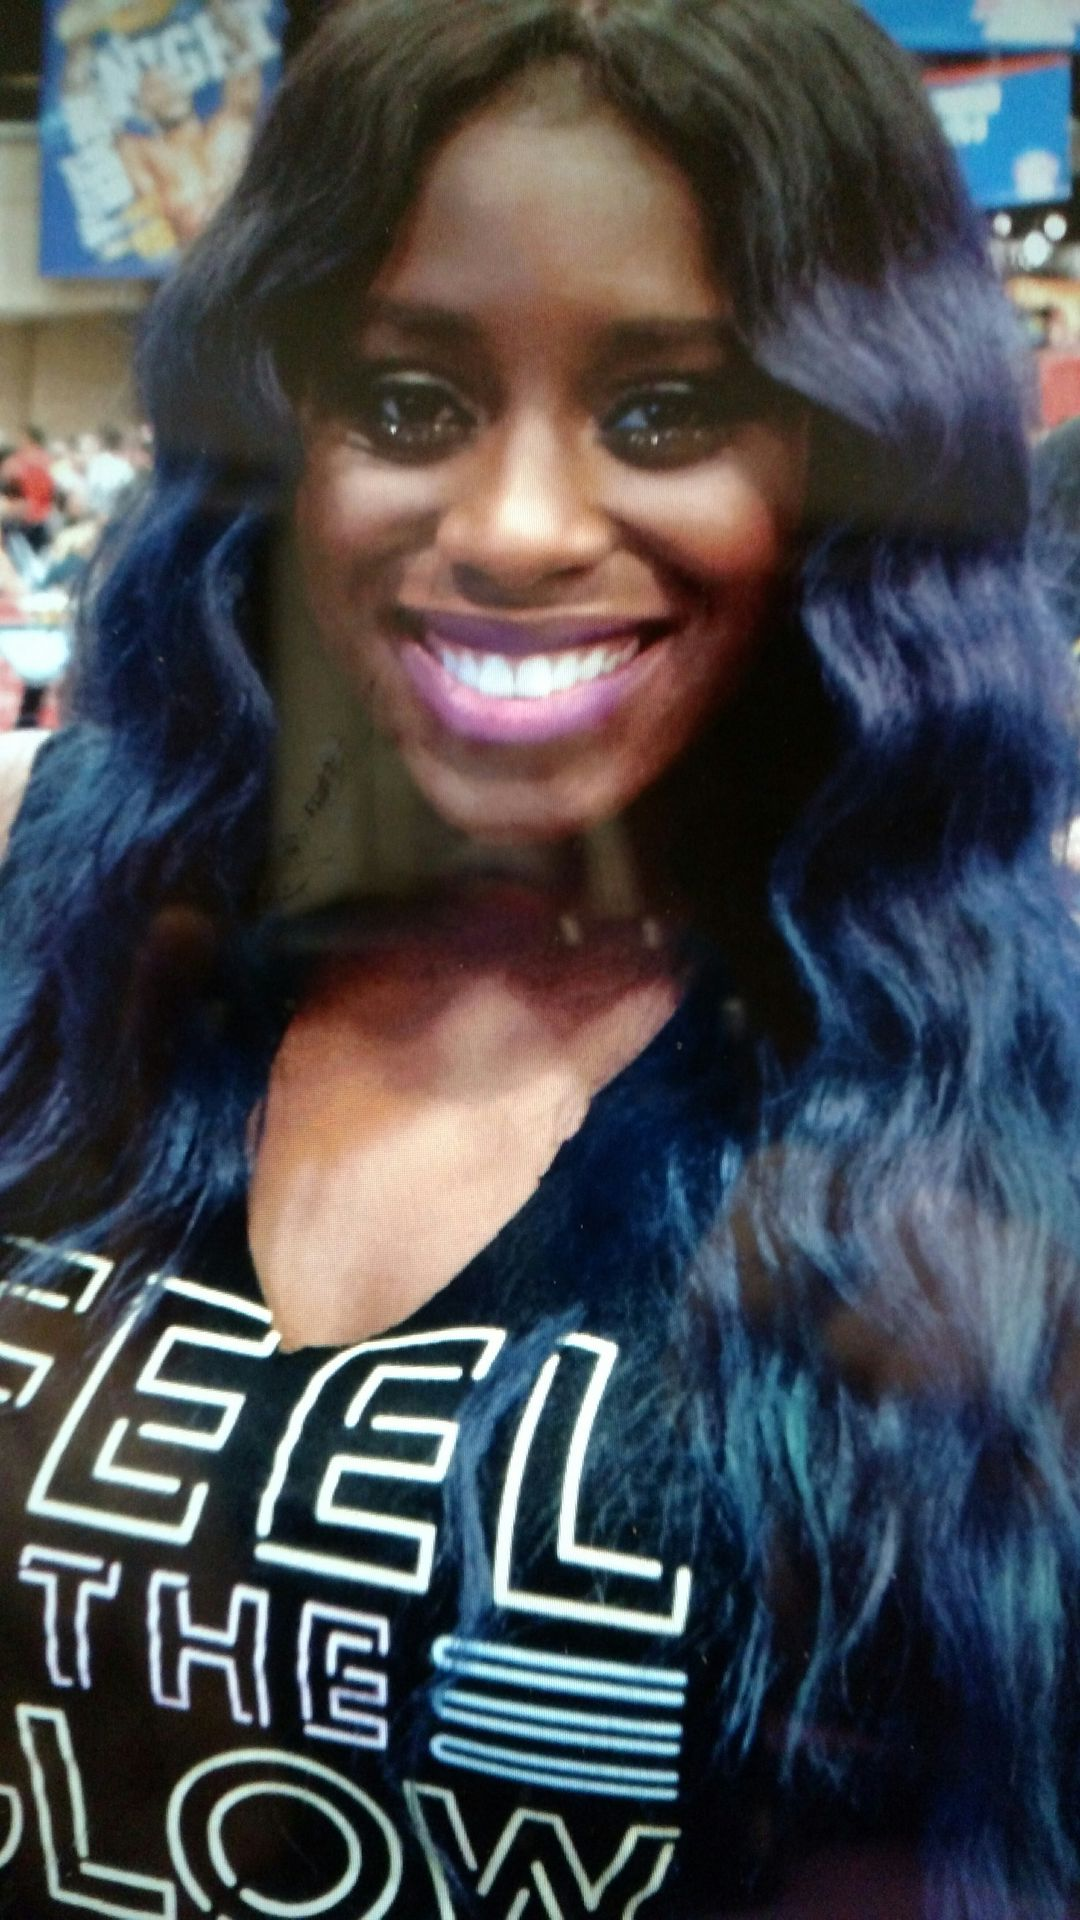 Wwe Smut Requests Are Closed - Naomi - Wattpad-5466